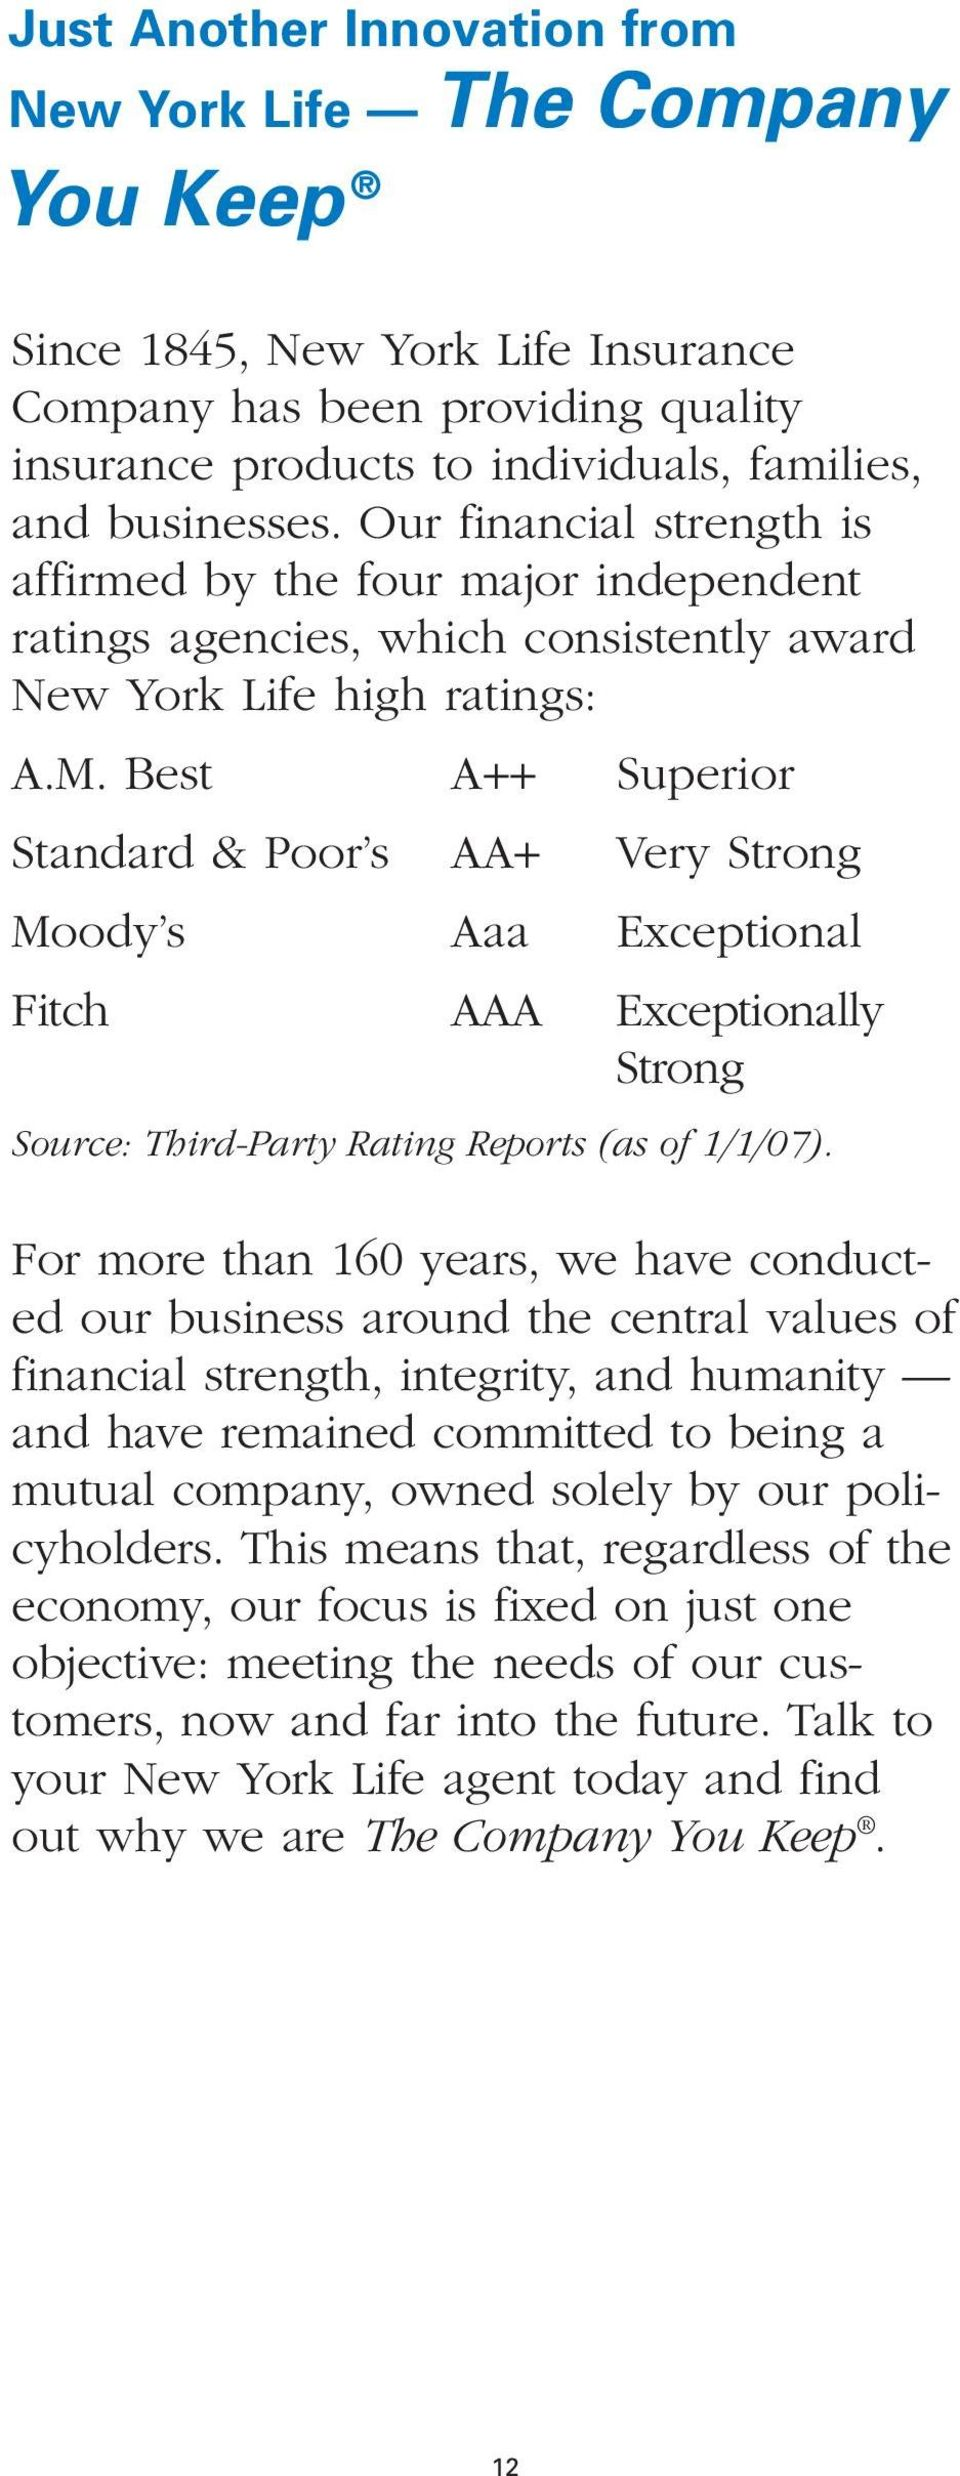 Best A++ Superior Standard & Poor s AA+ Very Strong Moody s Aaa Exceptional Fitch AAA Exceptionally Strong Source: Third-Party Rating Reports (as of 1/1/07).